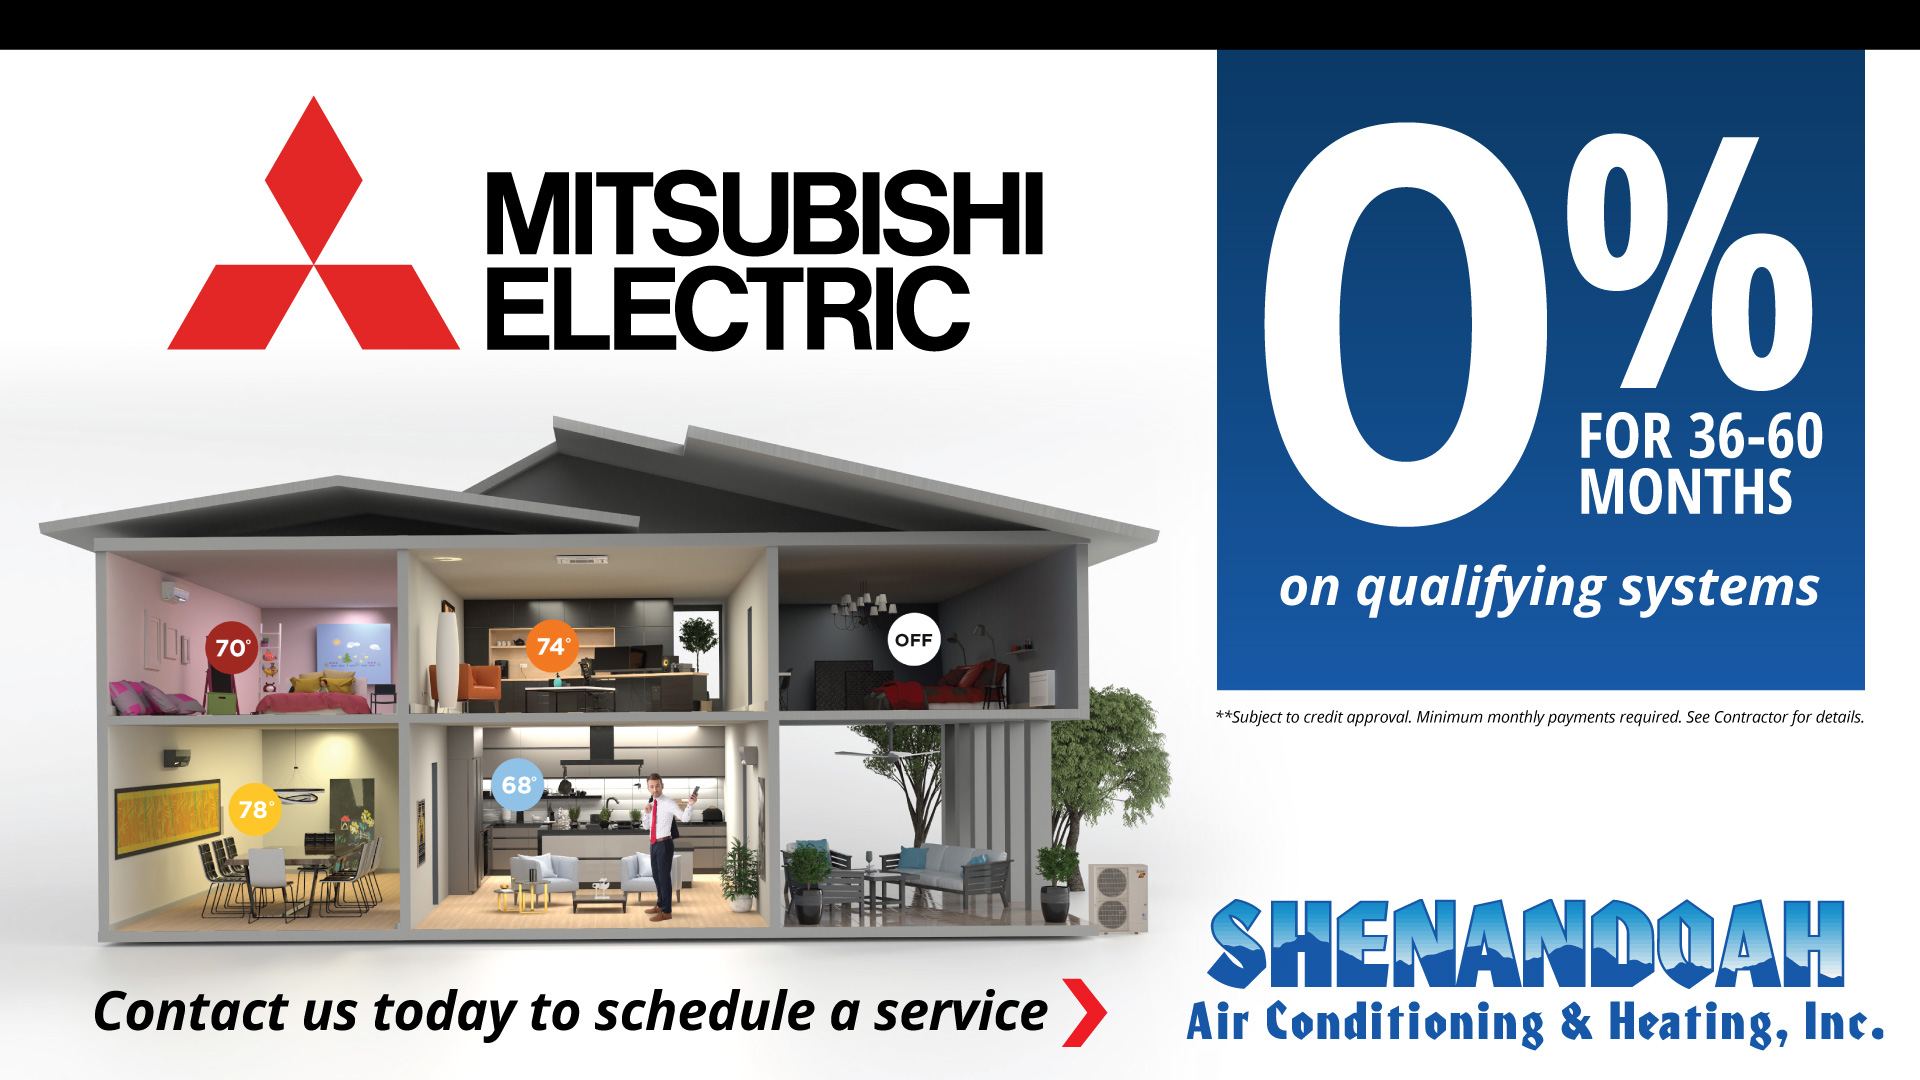 Mitsubishi 0% Financing for 36-60 months